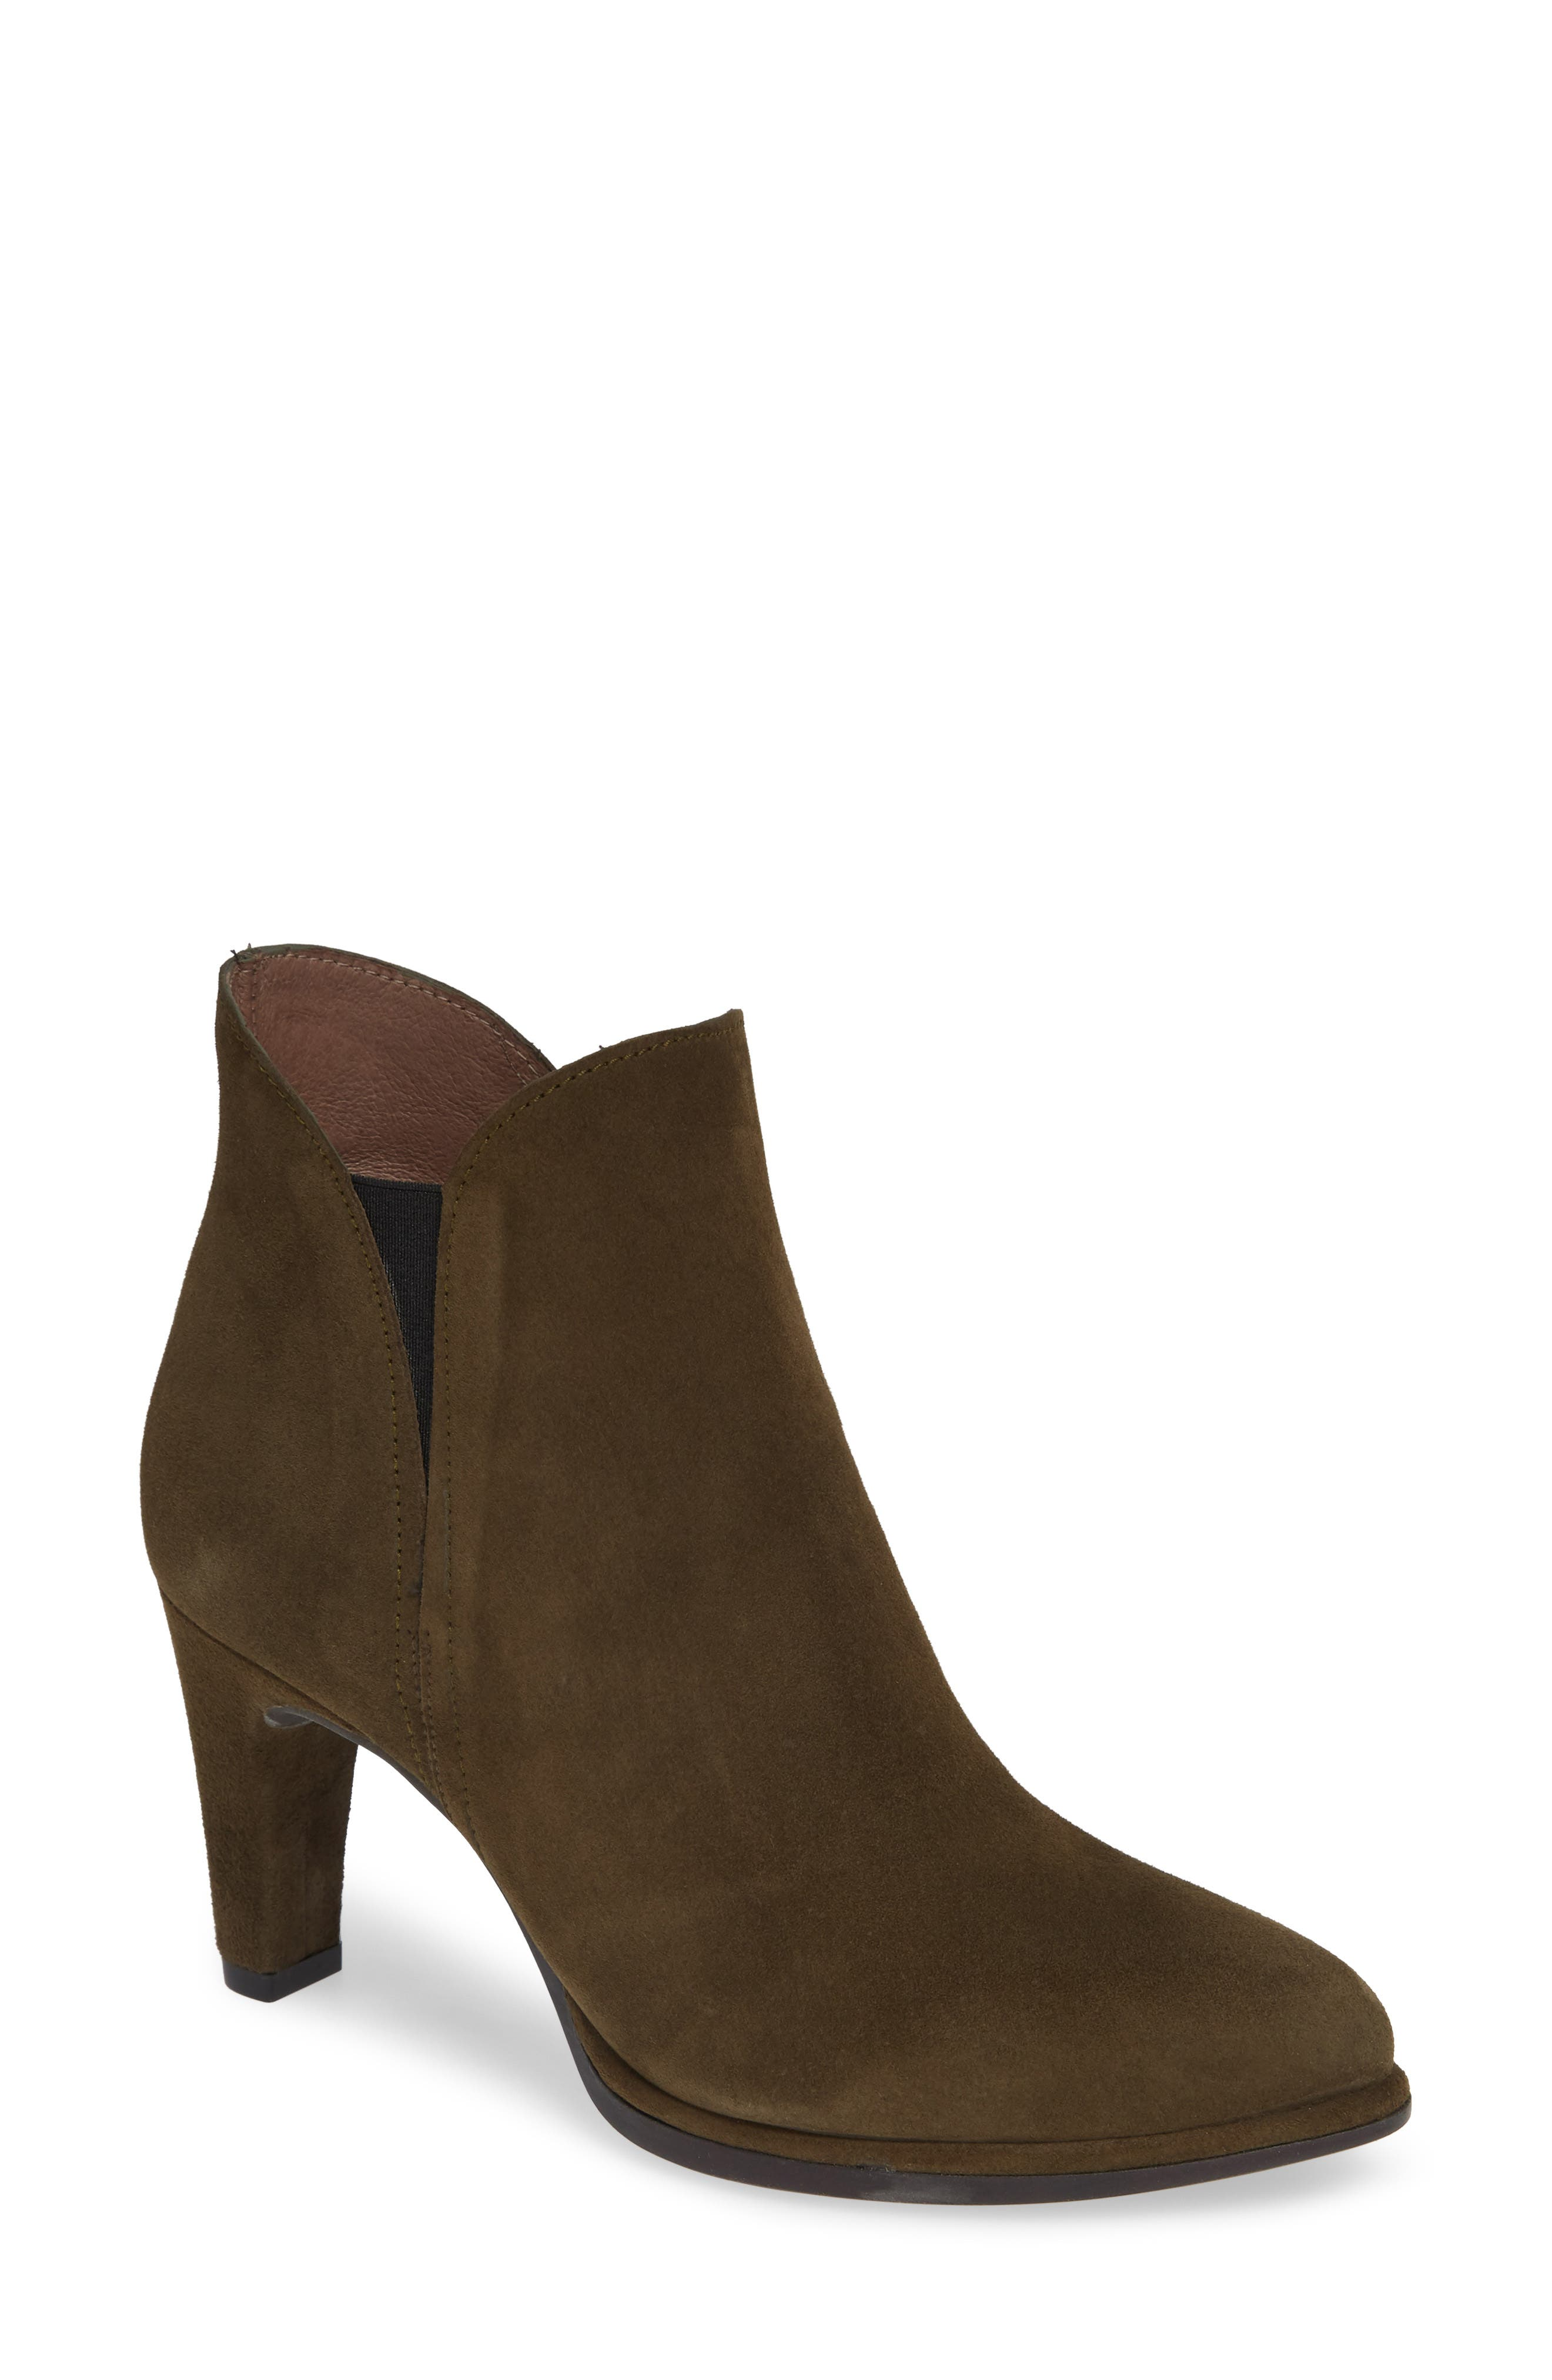 WONDERS Chelsea Boot, Main, color, MILITARY GREEN SUEDE